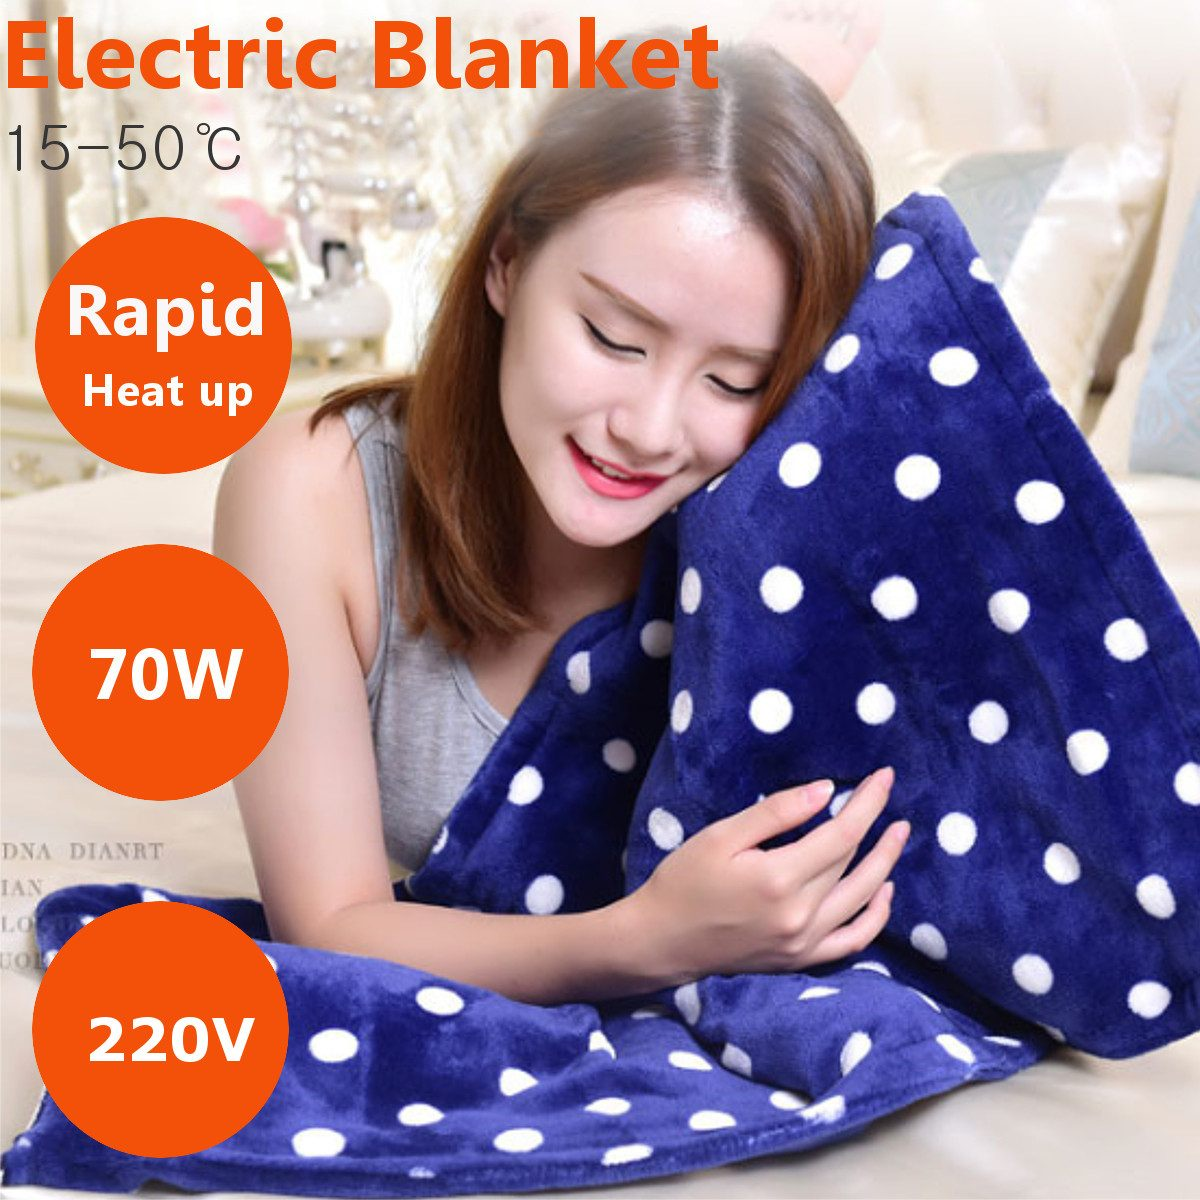 50*80cm Car Home Office Electric Warming Heating Blanket Pad Shoulder Neck Knee Mobile Heating Shawl Soft Winter Warm